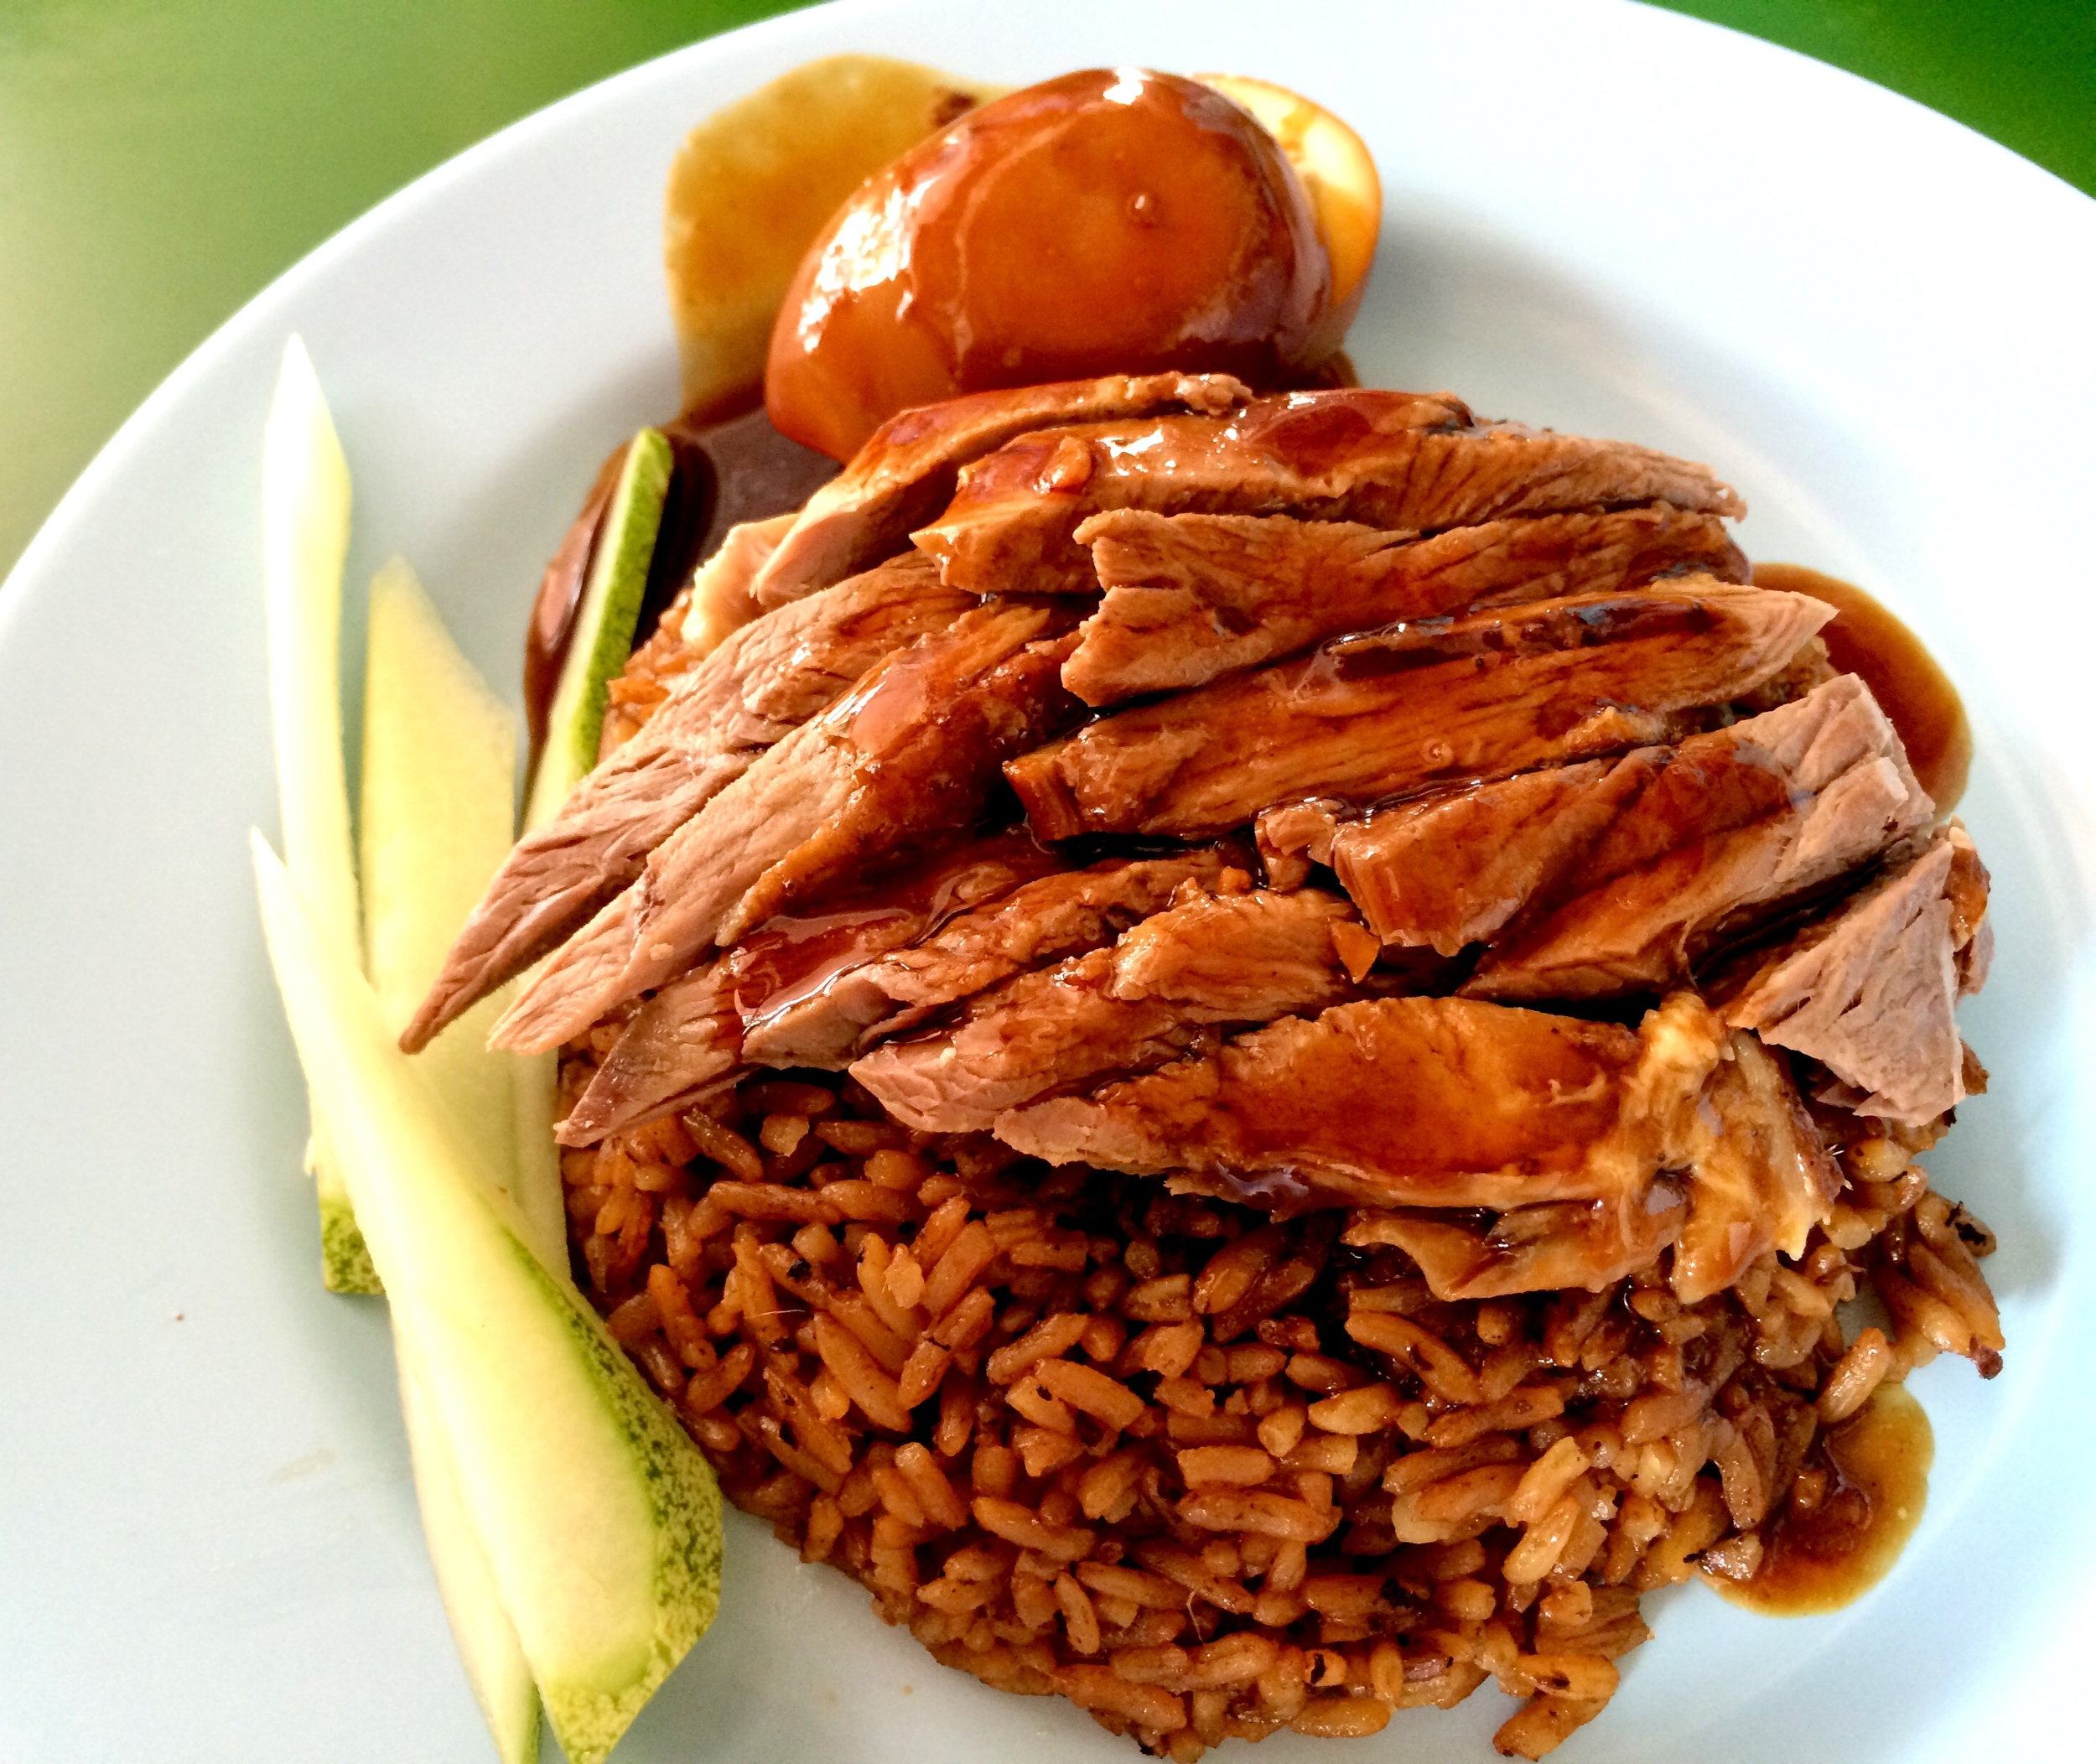 Duck rice: You Ji Duck Rice: Bukit Timah Market and Food Centre, 116 Upper Bukit Timah Road, #02-219, Singapore 588172